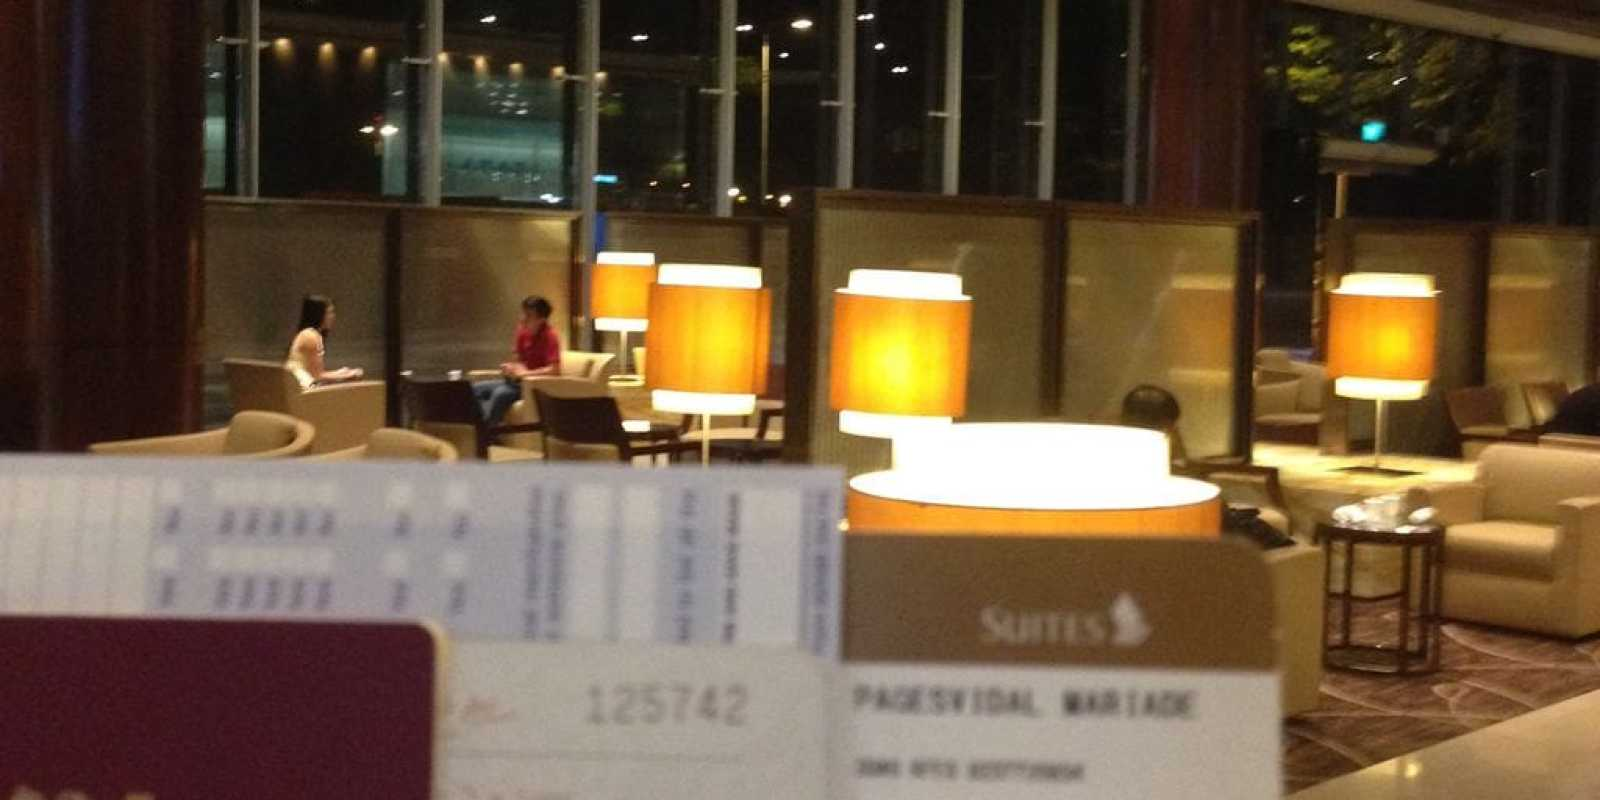 Suites check-in lounge